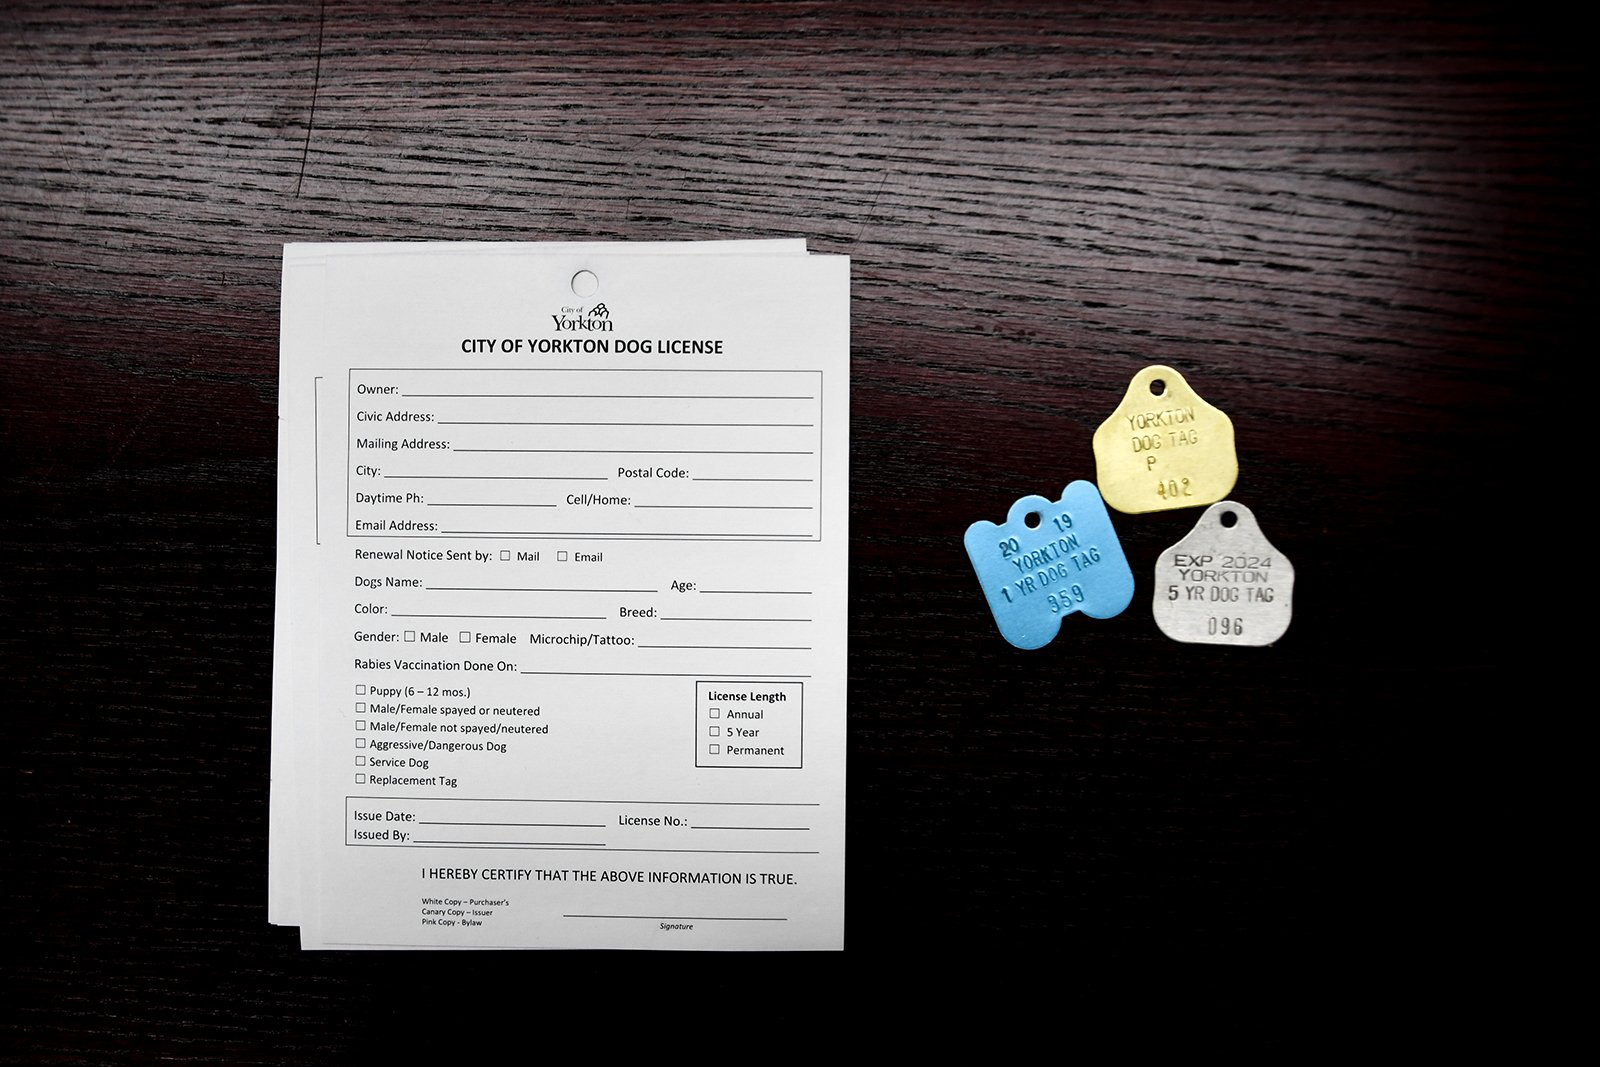 Dog tags and permit form